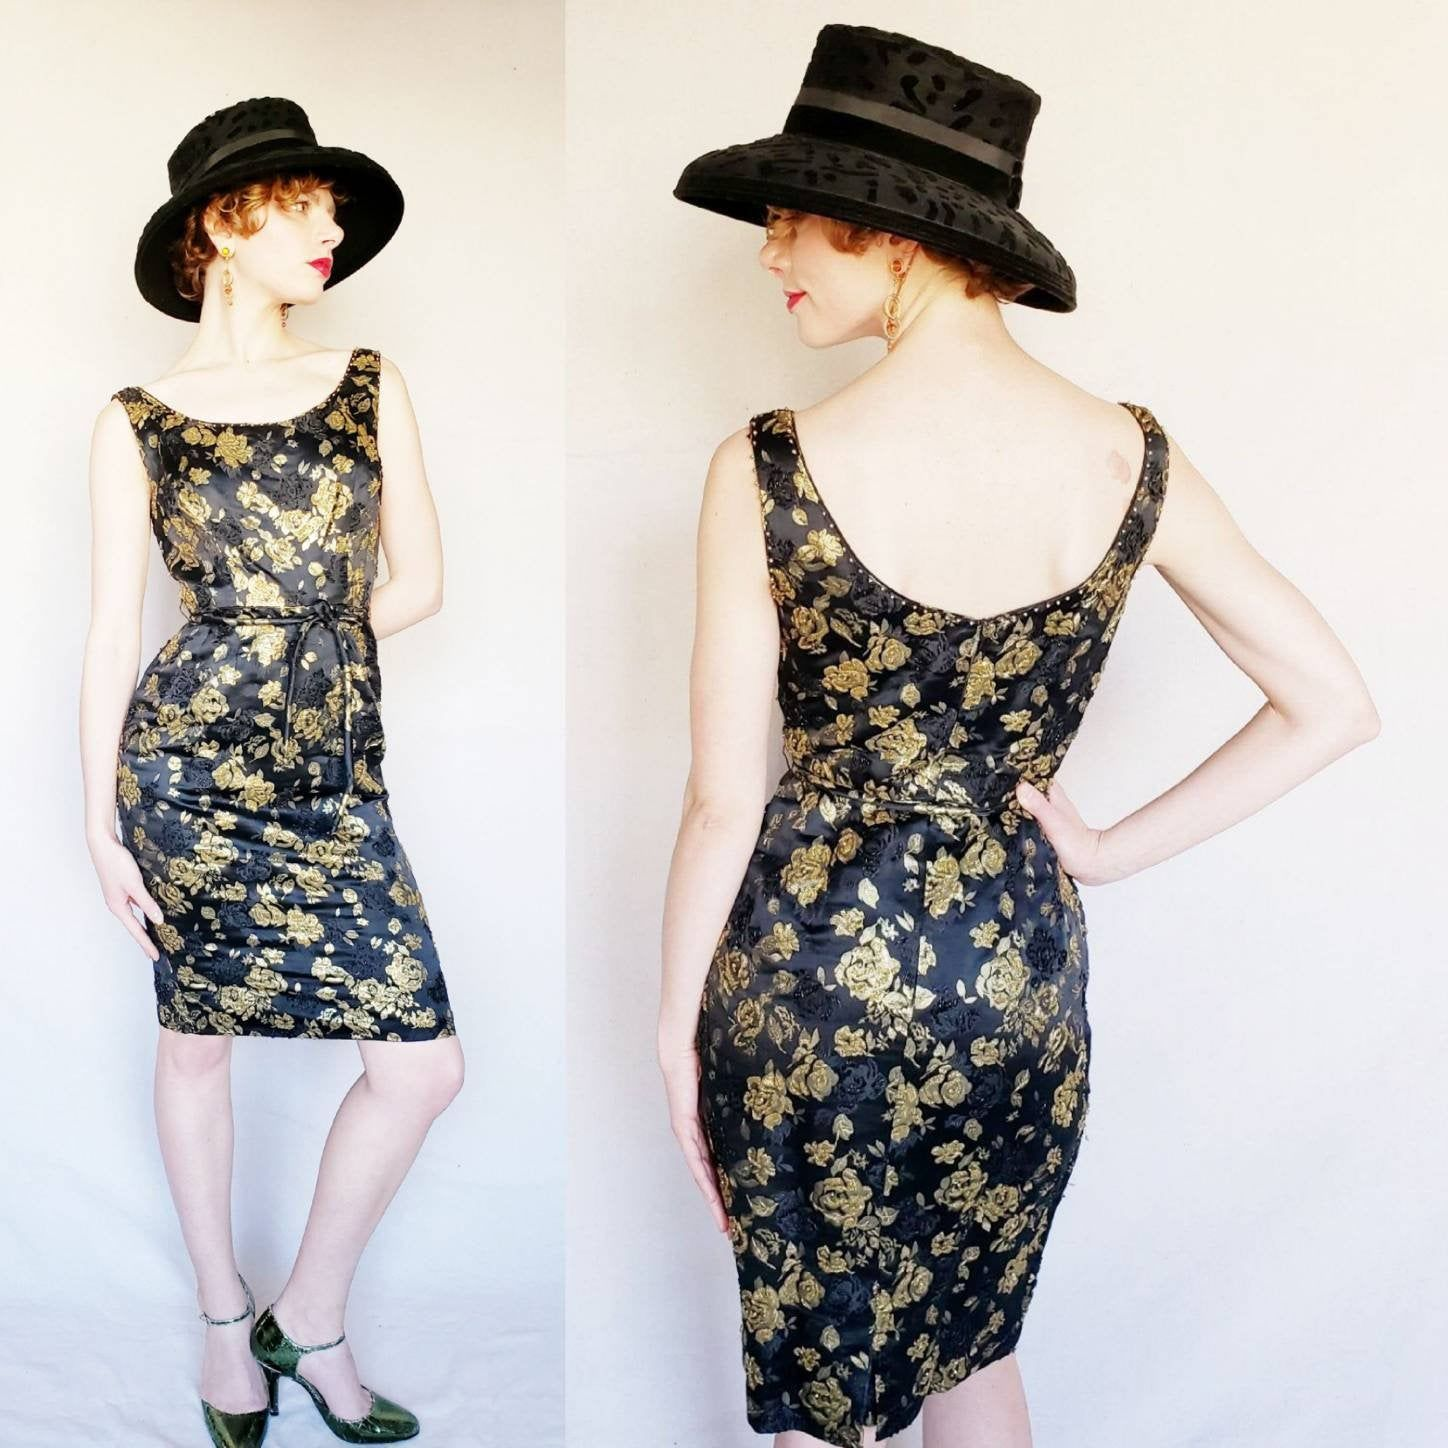 1960s Black Gold Brocade Beaded Cocktail Dress 60s Sleeveless Wiggle Party Dress Ornate Floral Print Small Dresses Beaded Cocktail Dress Trending Outfits [ 1448 x 1448 Pixel ]